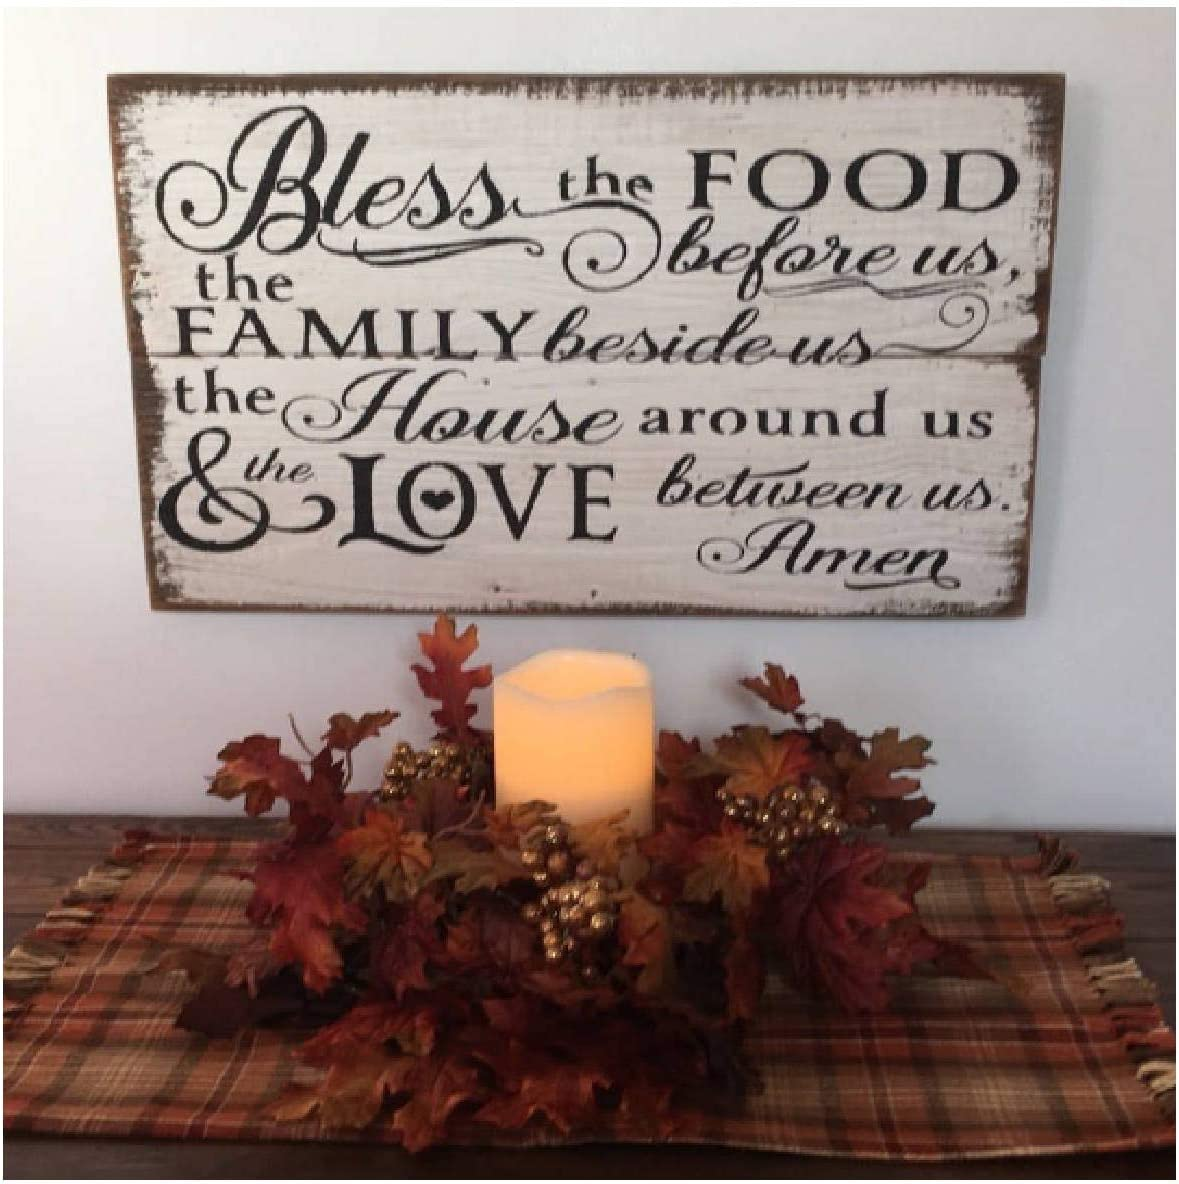 Rustic Wooden Plaque Wall Art Hanging Wood Sign Bless The Food Before Us The Family Beside Us The House Around Us and The Love Between Us Wood Sign 20